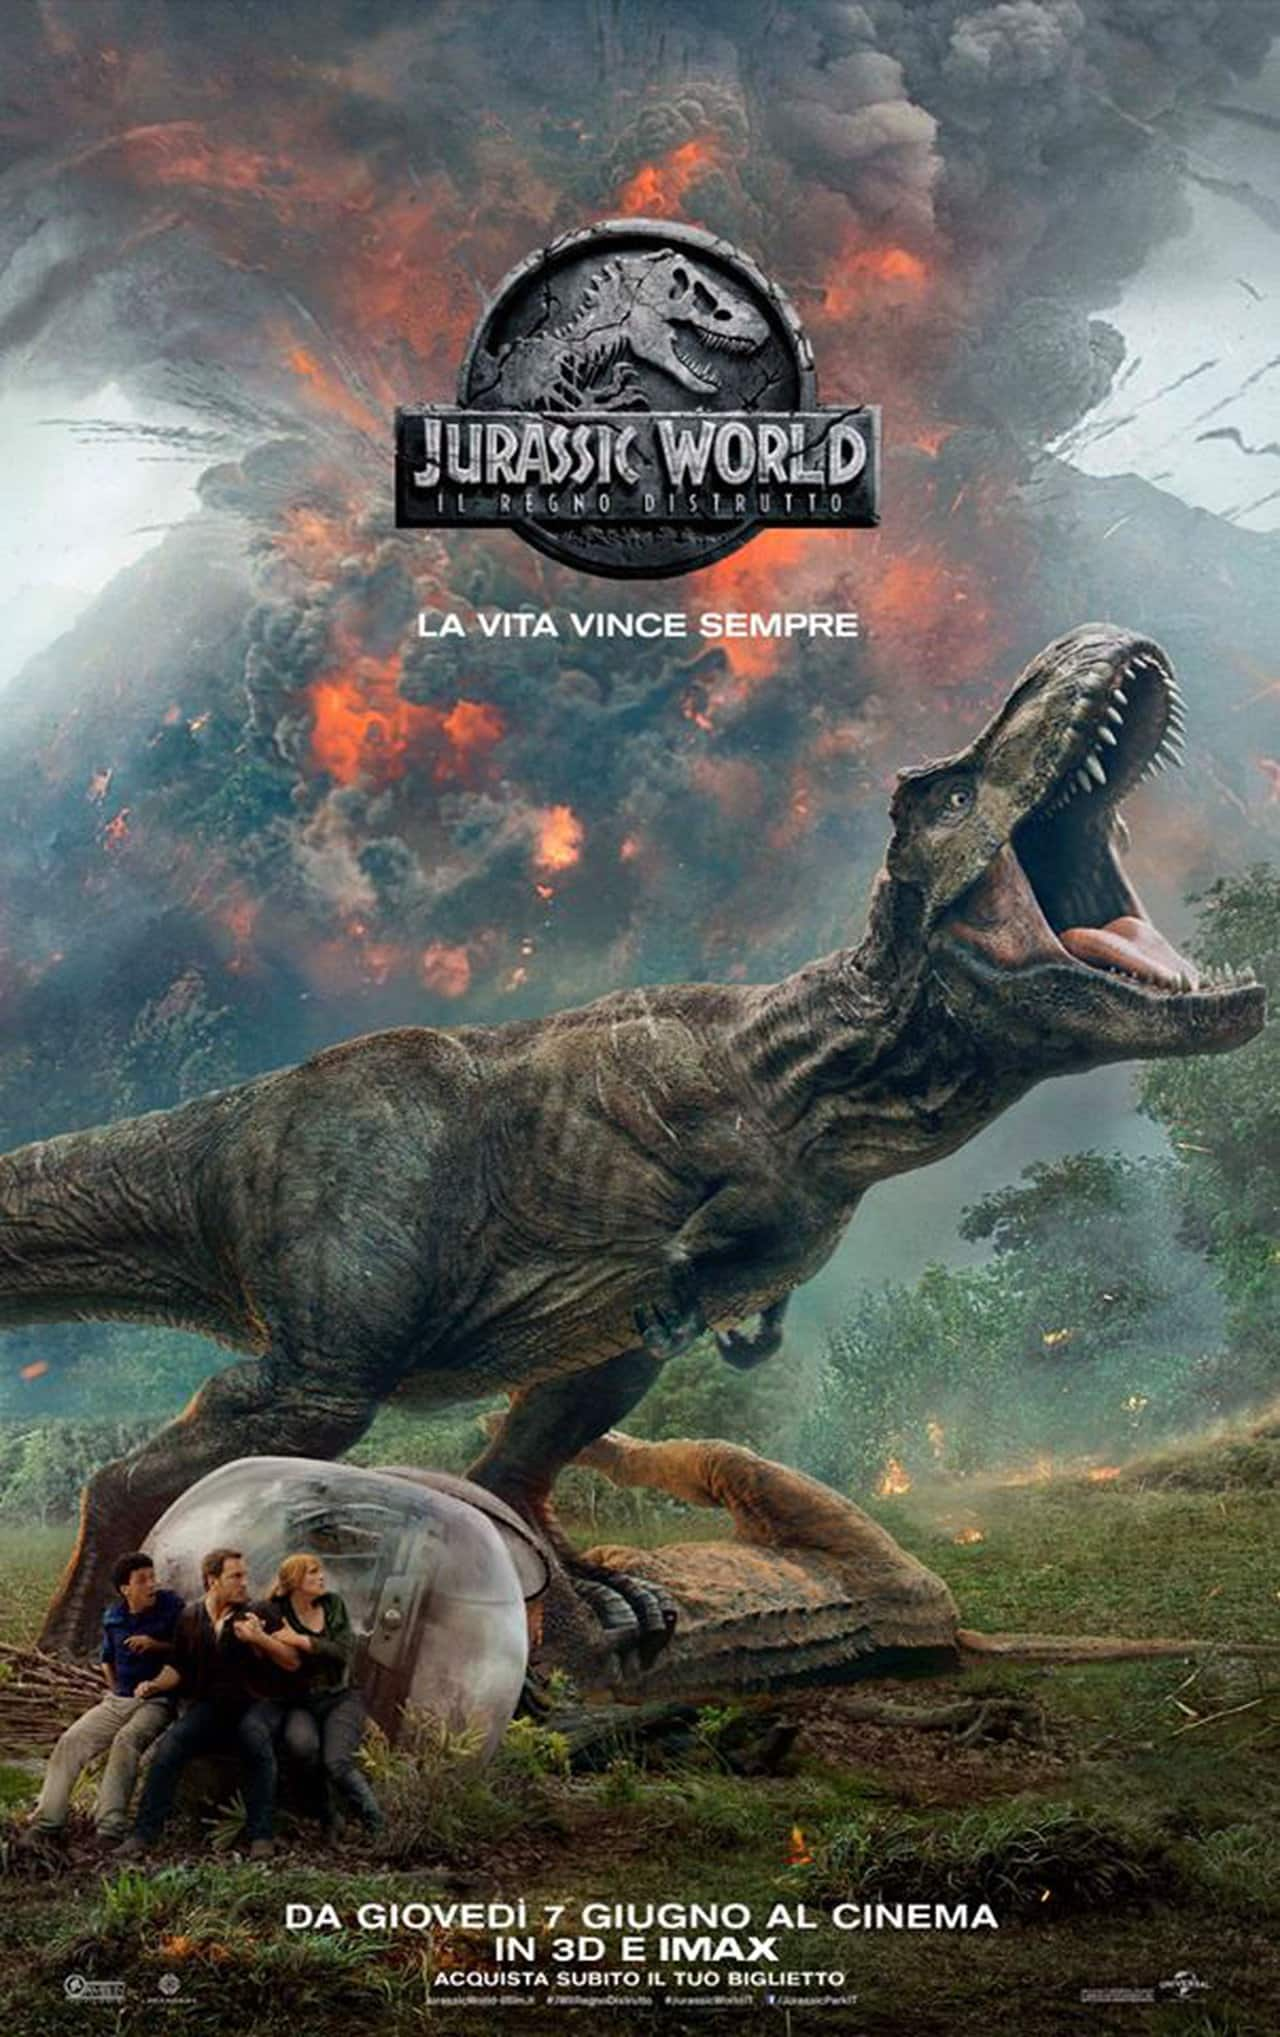 Jurassic World Il Regno Distrutto teaser poster ita, cinematographe.it